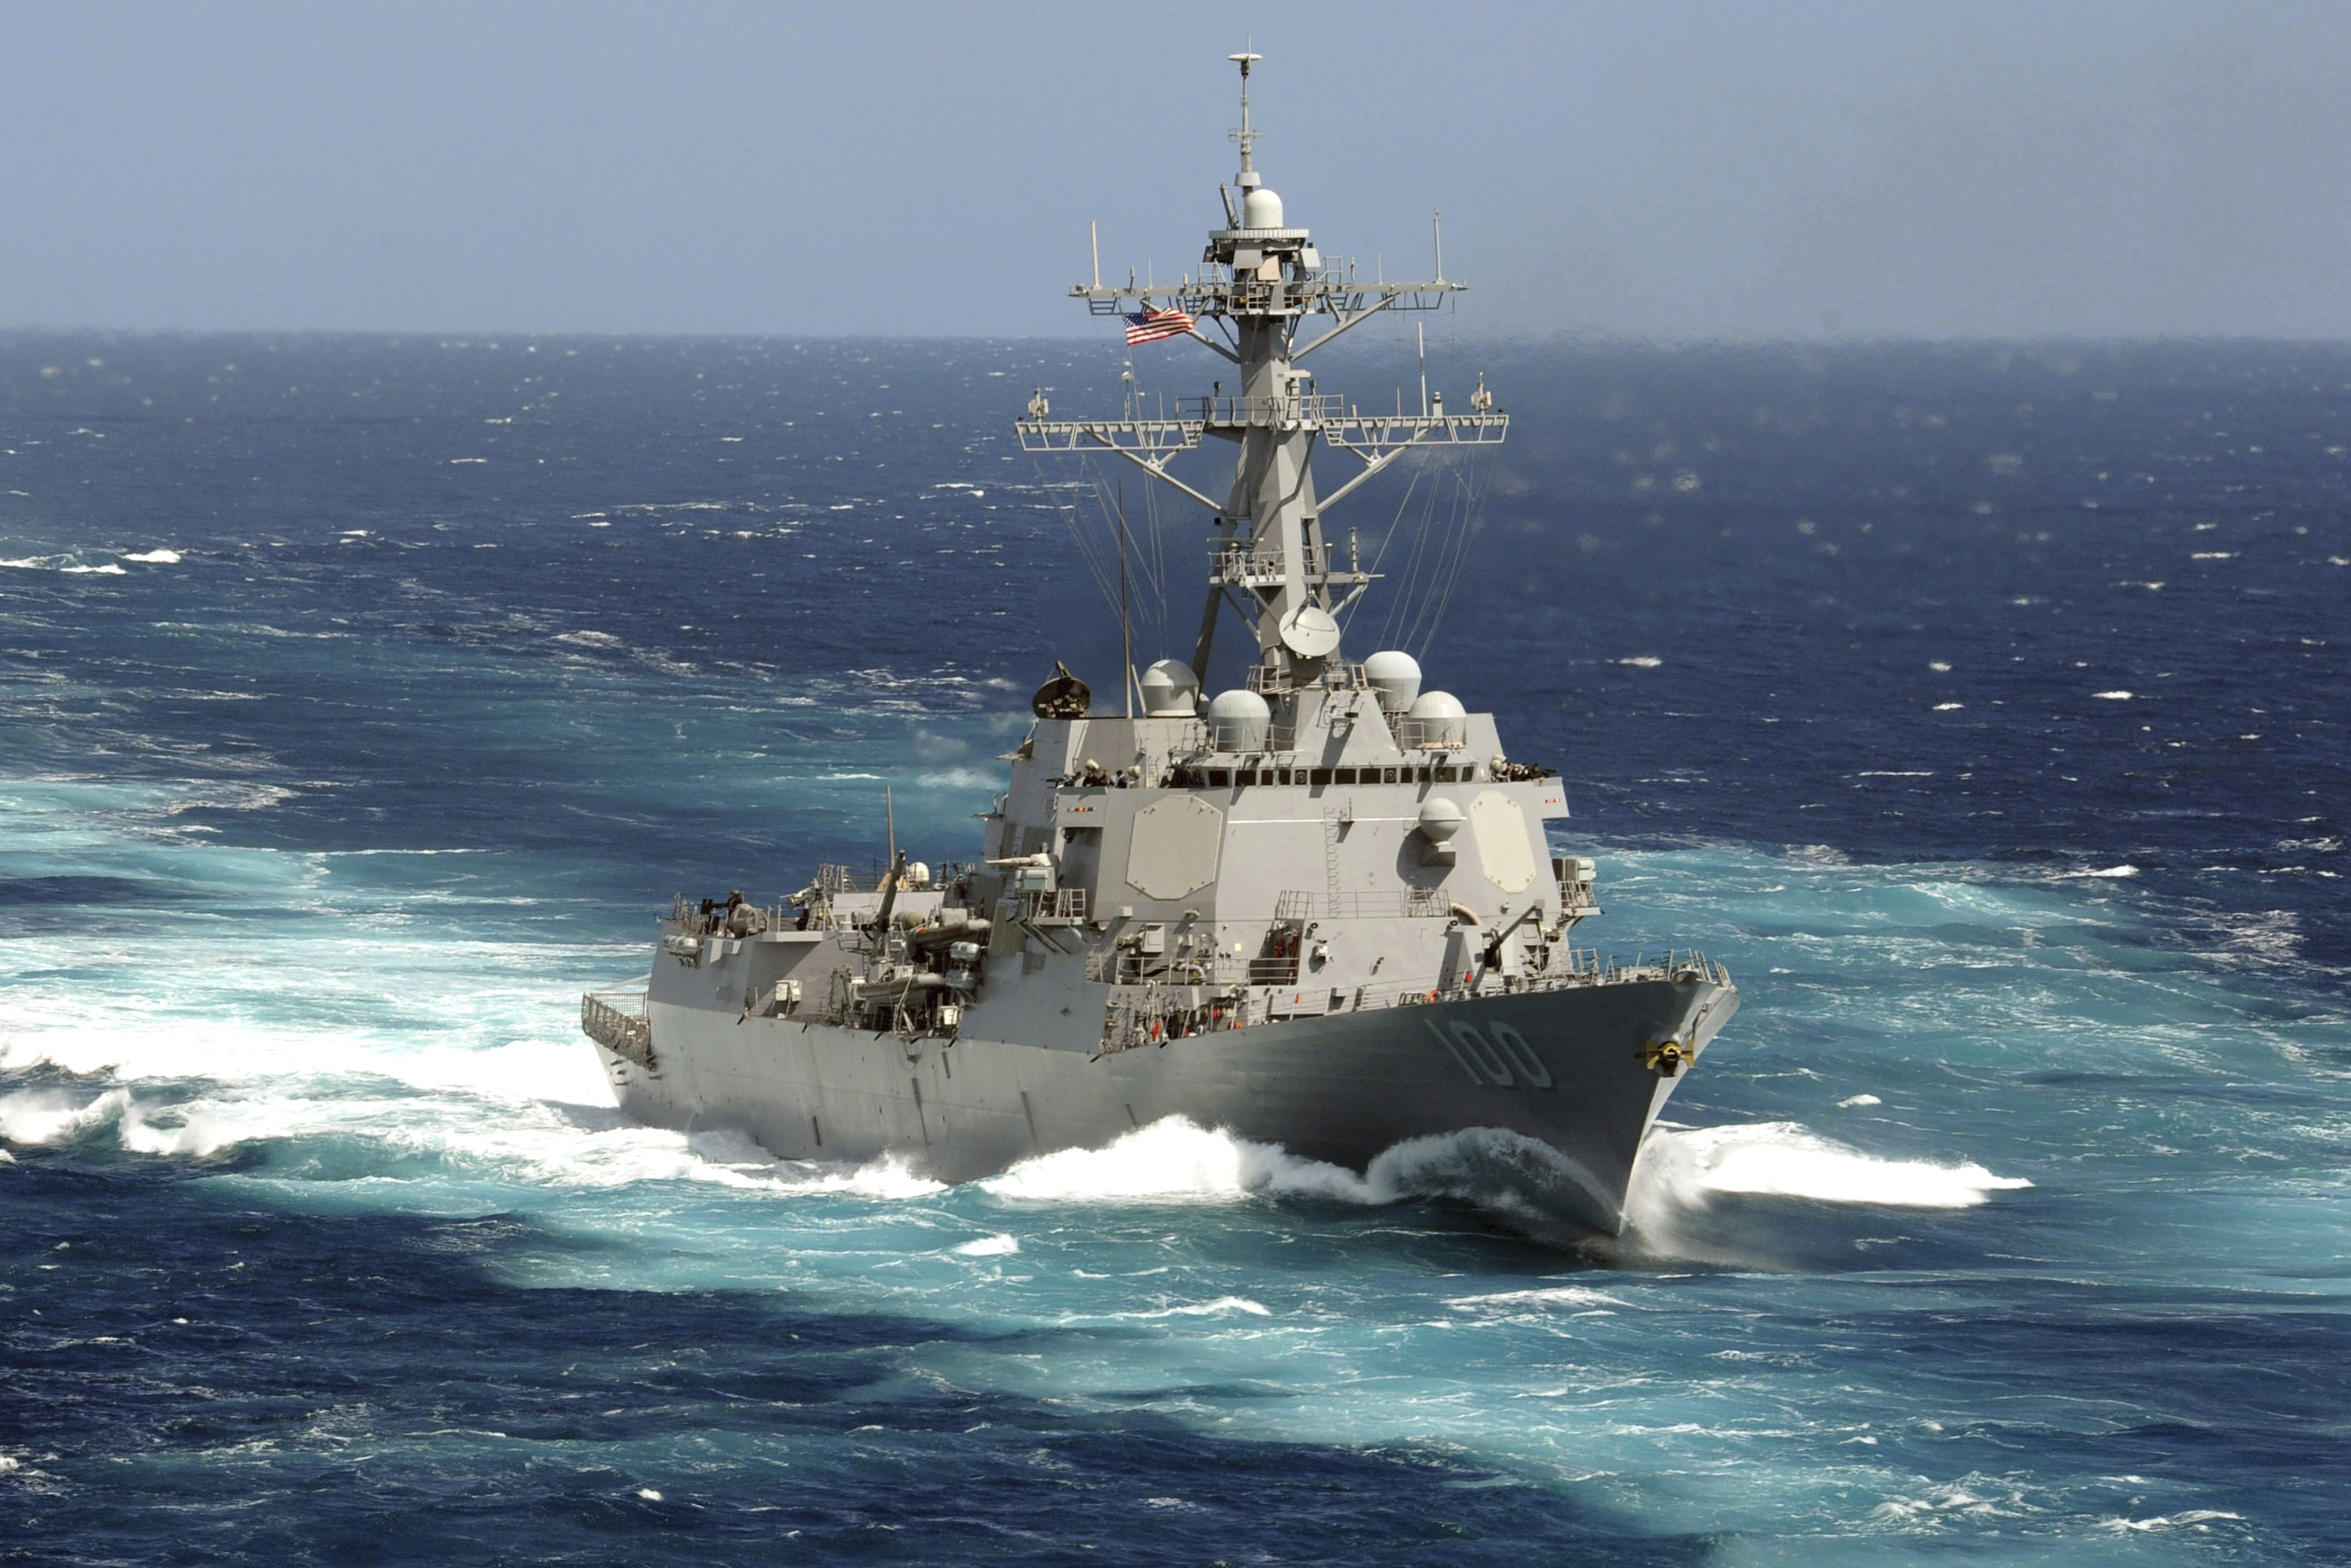 The guided-missile destroyer USS Kidd